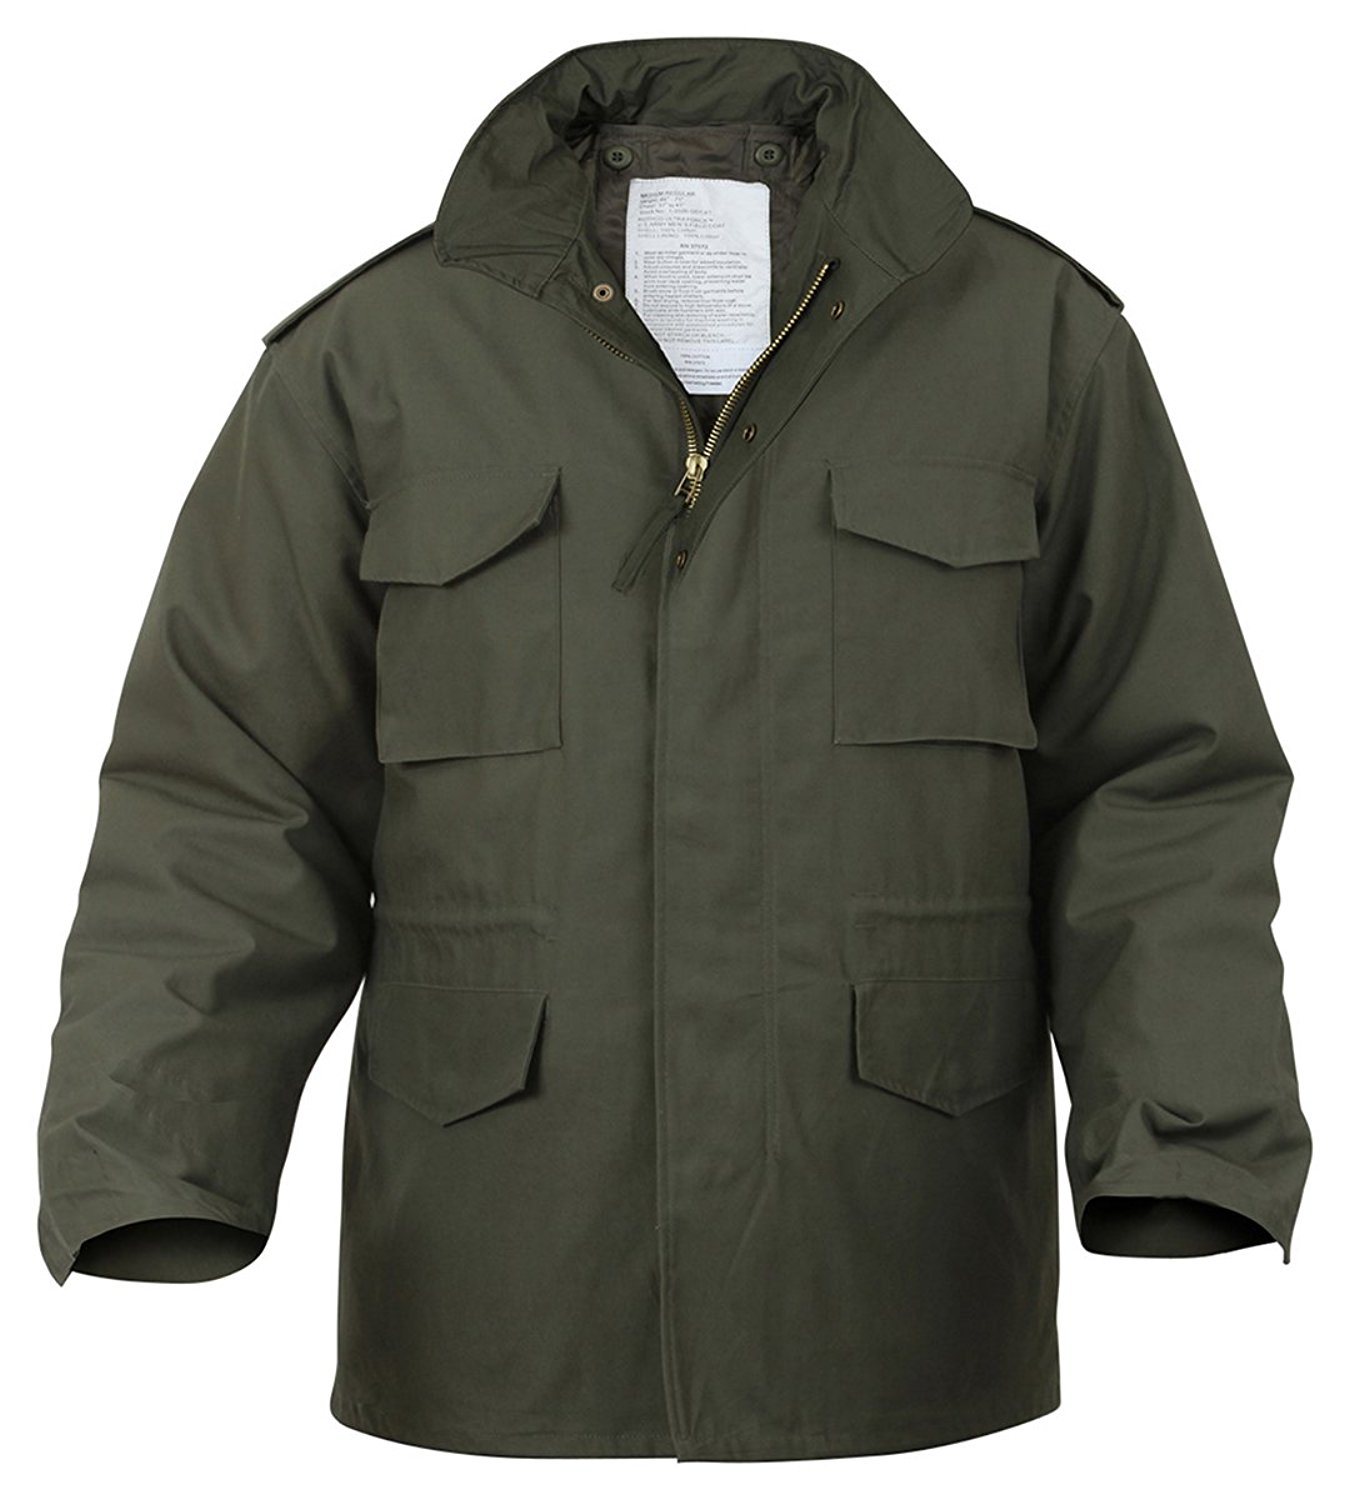 Rothco Military M-65 Field Jacket - Olive Drab, Medium